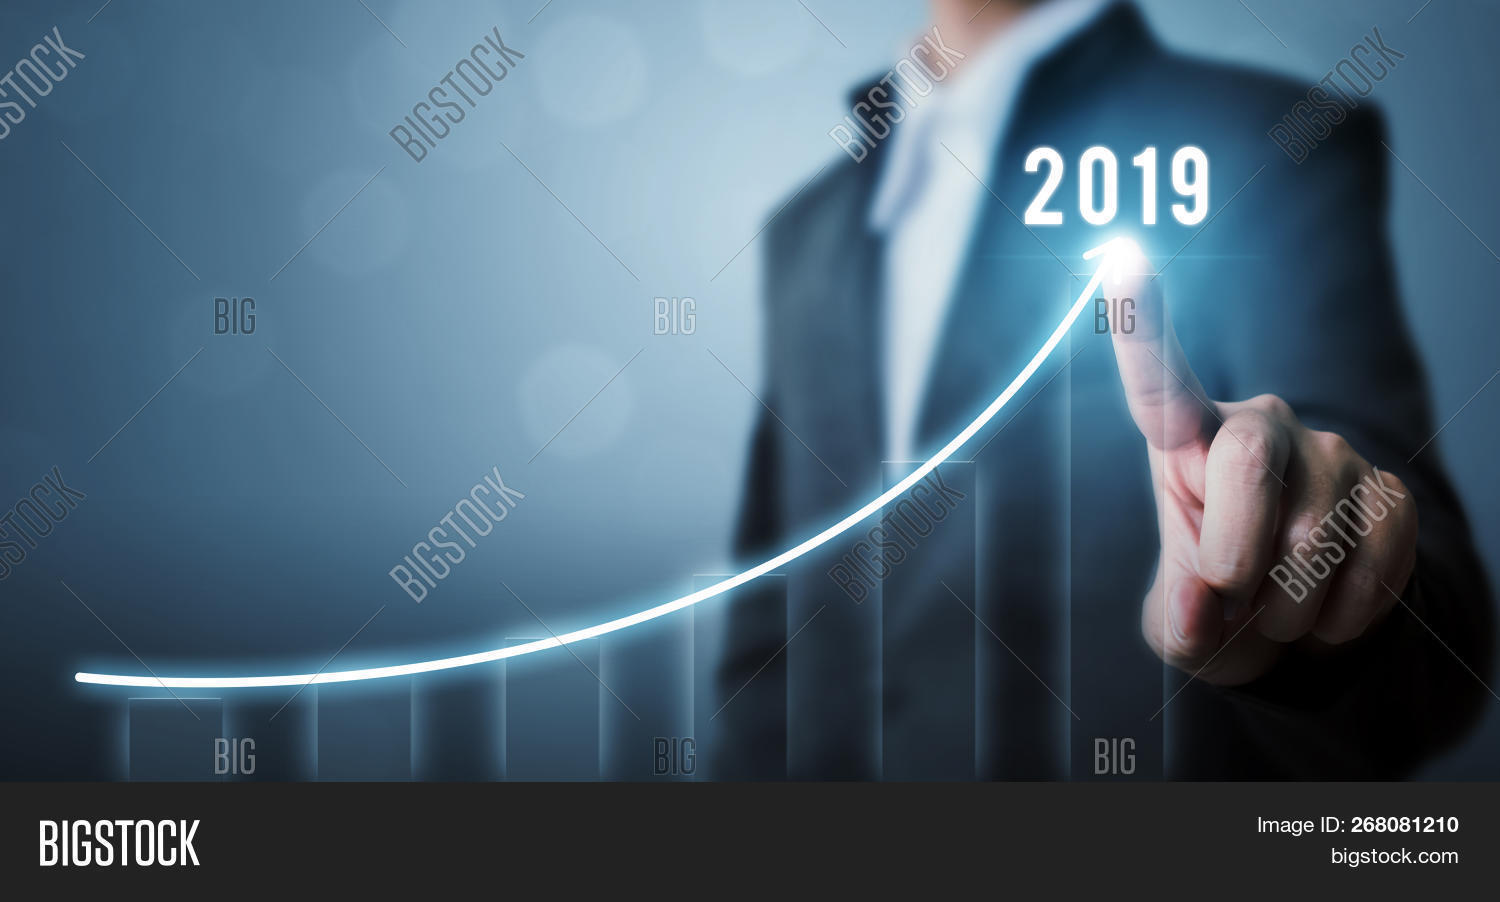 2019,achievement,advice,analysis,benefit,business,career,chart,company,concept,development,diagram,economic,education,efficiency,excellence,financial,goal,graph,grow,growth,hand,increase,industry,investment,leadership,man,management,manager,market,method,money,opportunity,performance,plan,professional,profit,progress,project,report,revenue,sale,solution,statistic,stock,strategy,success,target,trend,virtual